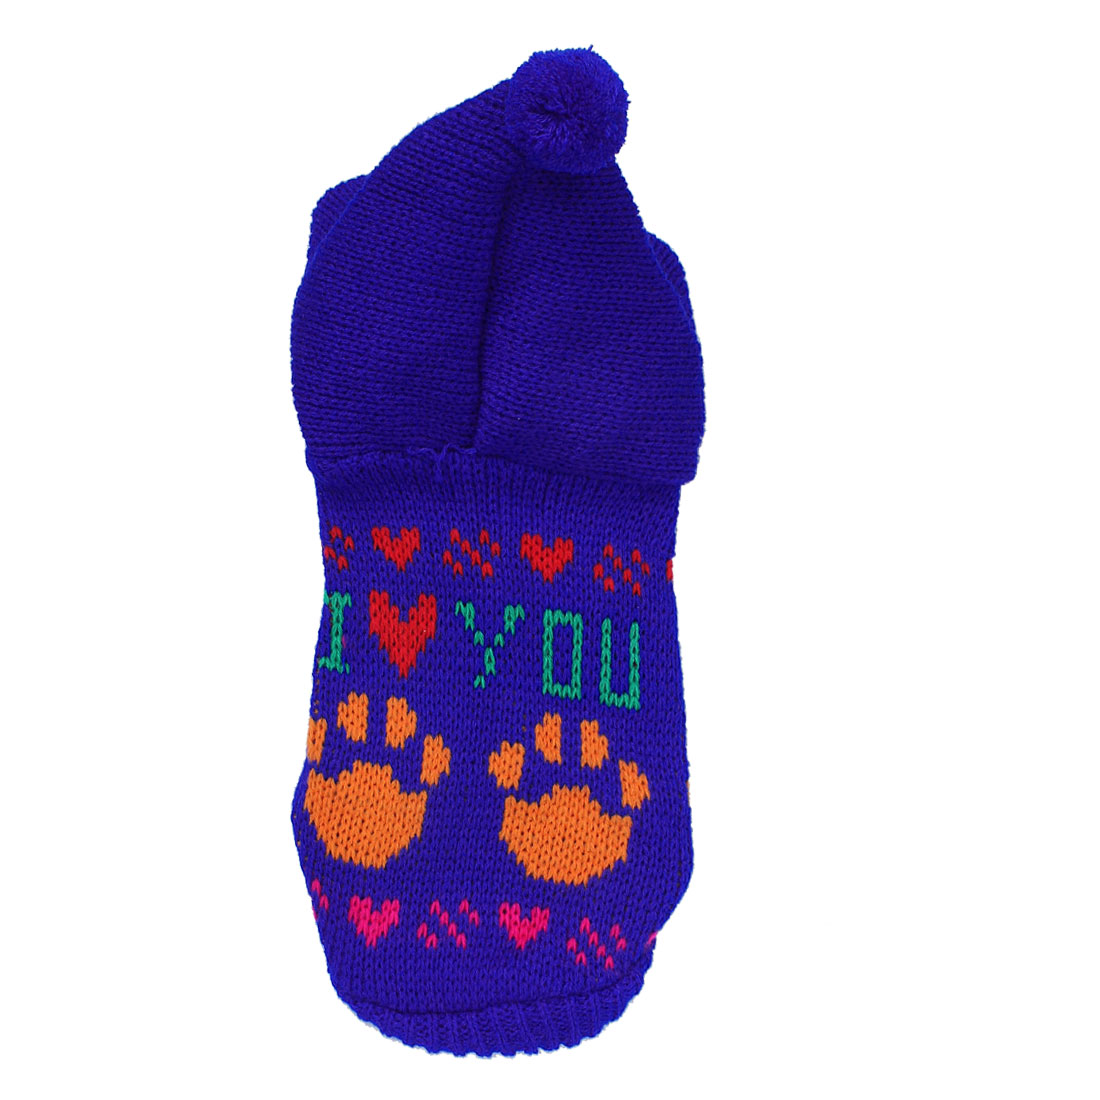 Blue Knitted Hooded Paw Heart Pattern Pet Dog Yorkie Cat Apparel Sweater XXS